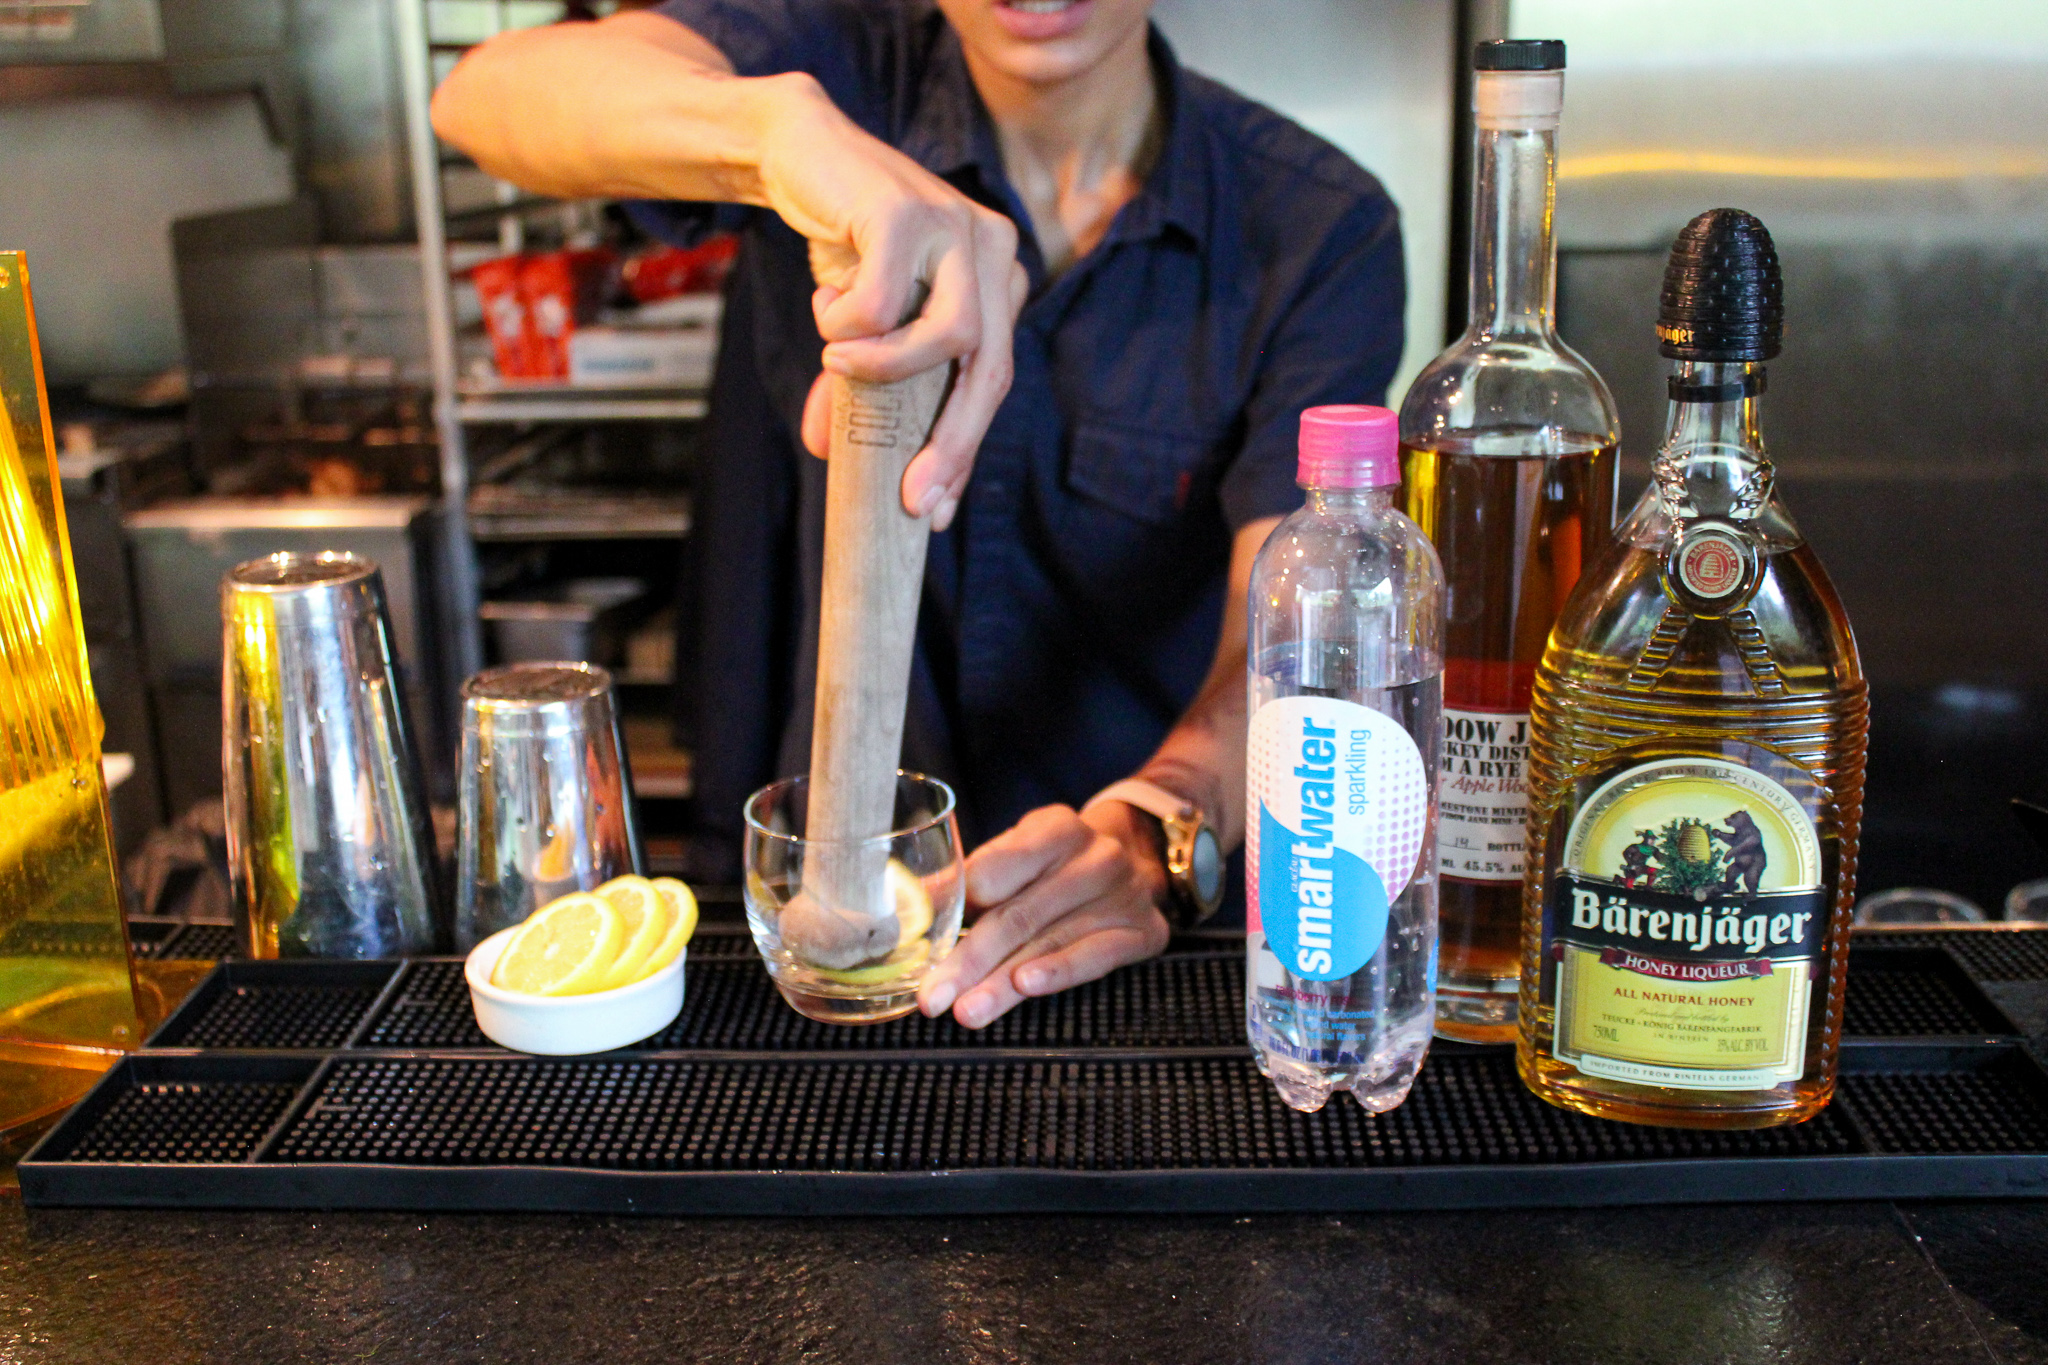 Fresh lemon slices and a honey liqueur make the bourbon smash lighter on calories (c) Anna Lanfreschi